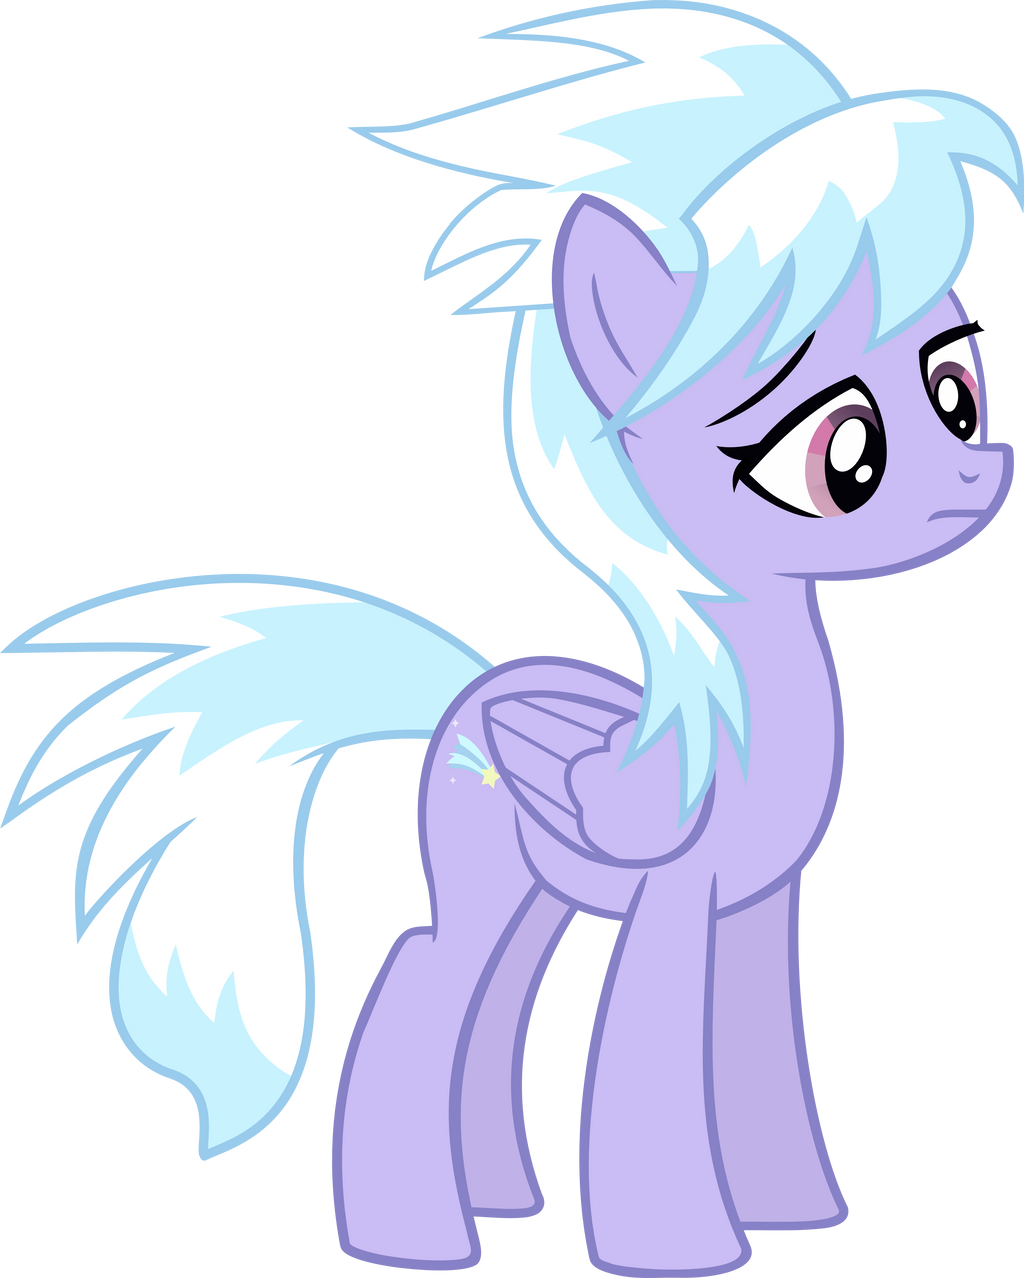 Cloudchaser is not amused